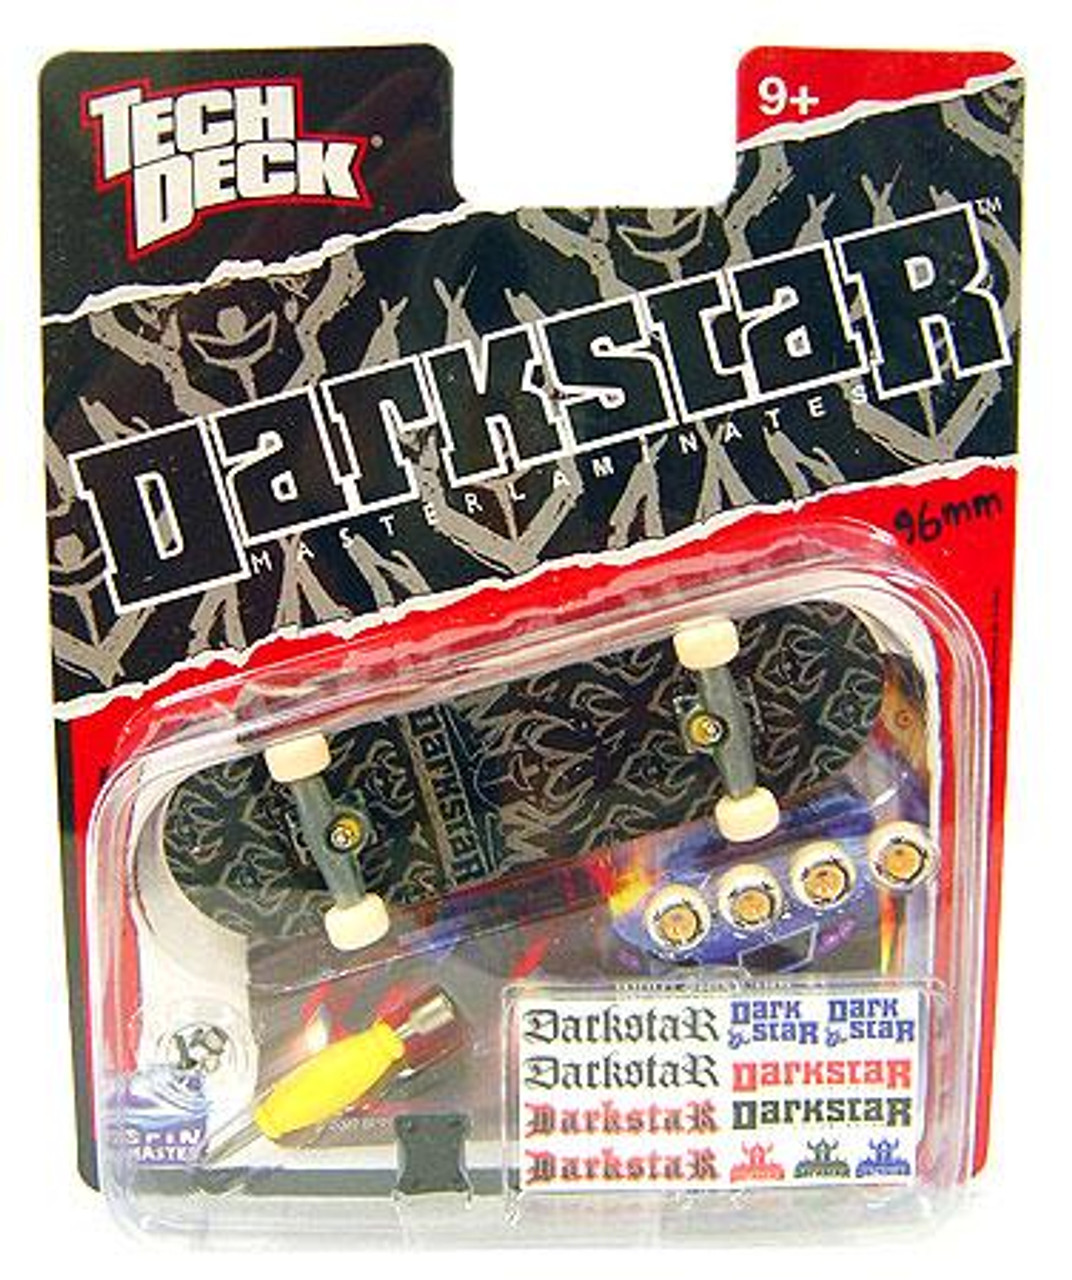 Tech Deck Darkstar 96mm Mini Skateboard [Black & Gray]